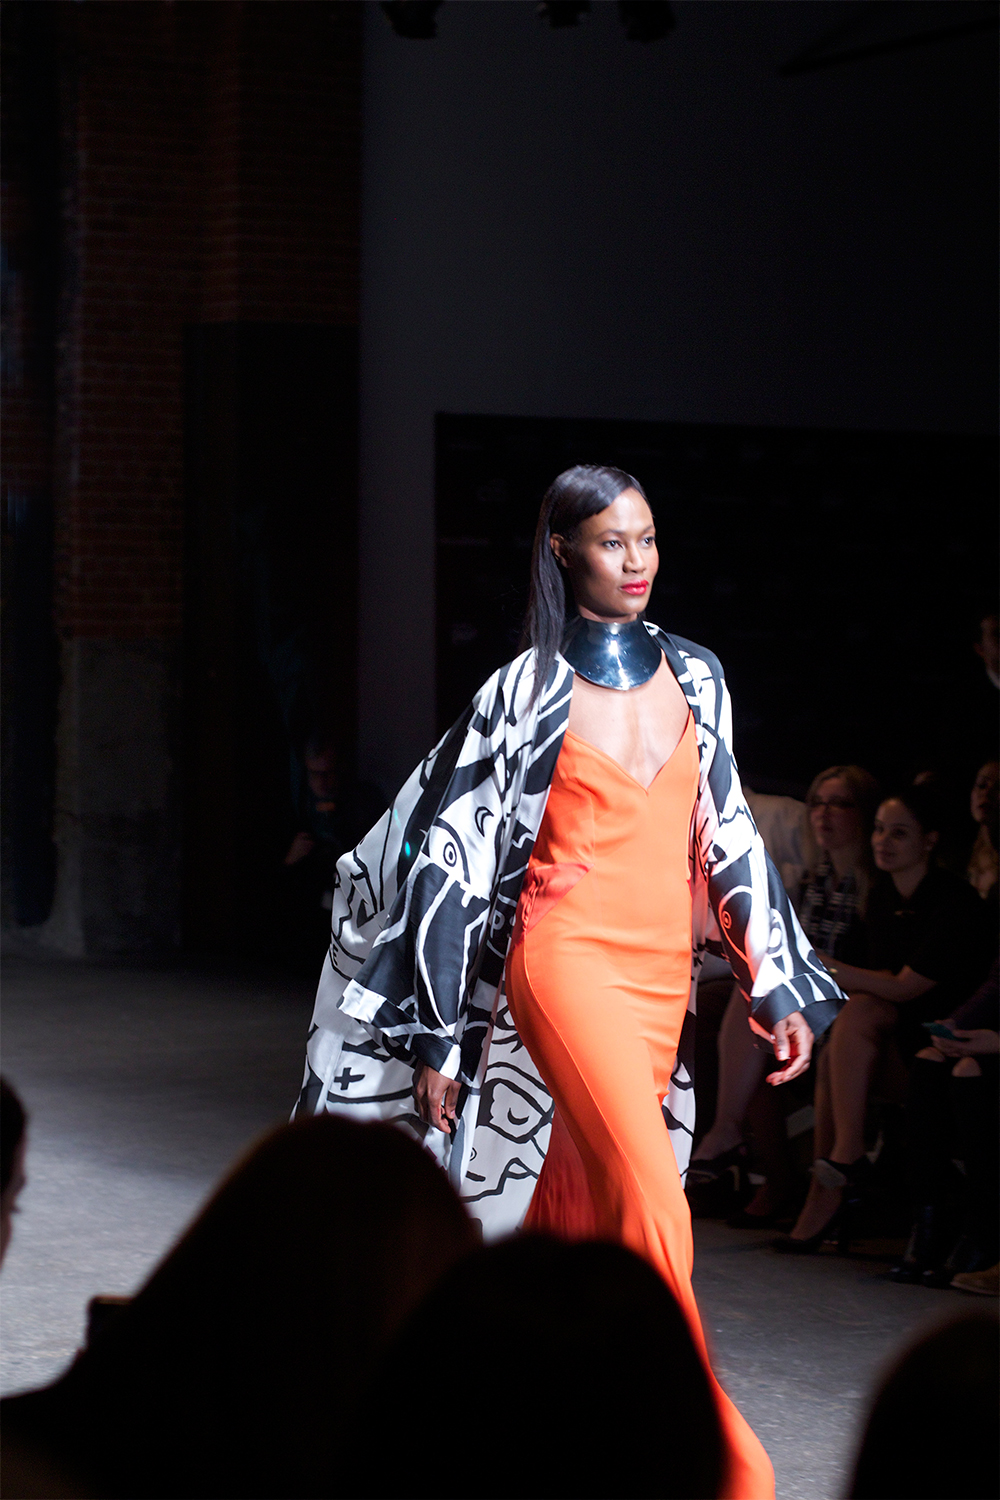 """Monday I attend the Nolcha shows at Beam. I attended two shows, the first one was the """"Ones to Watch"""" sho"""